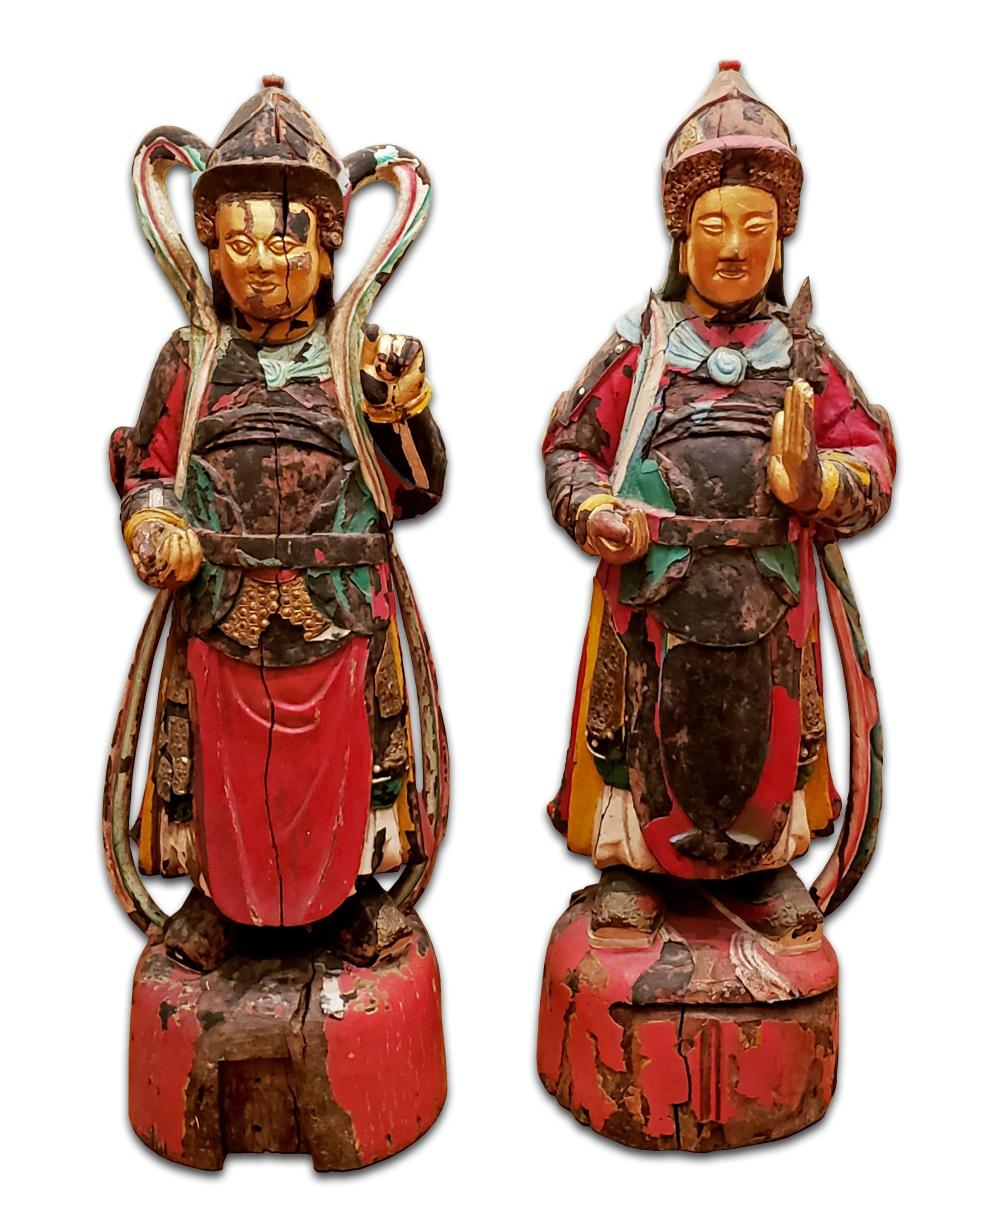 Pair of Magnificent 12th C. Hand Carved Gilt Polychrome Buddha Guard Statues